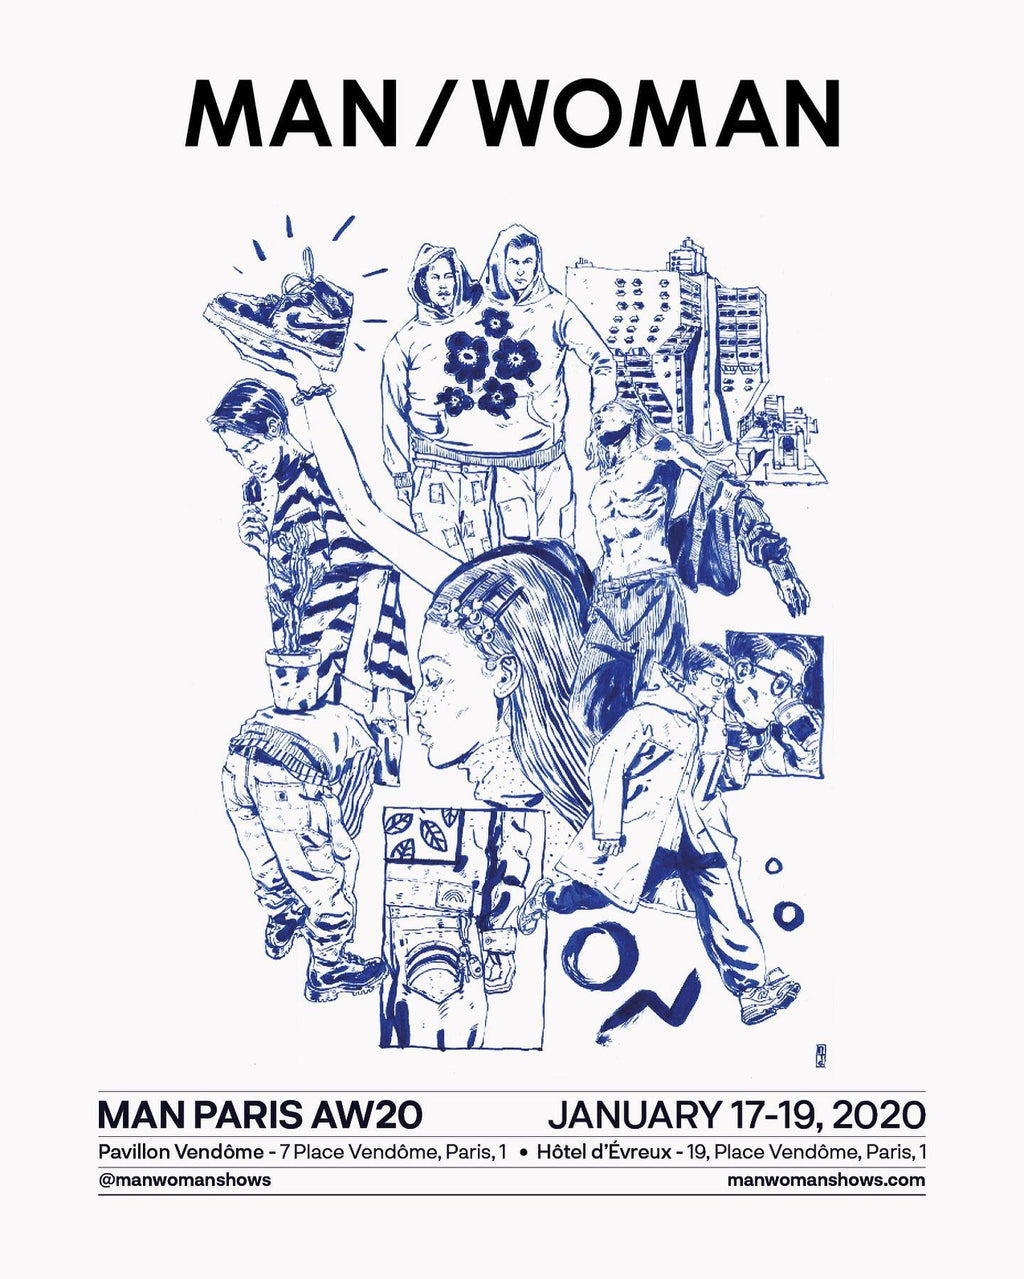 Business Trade Shows - Paris, MAN/WOMAN, Jan 2020